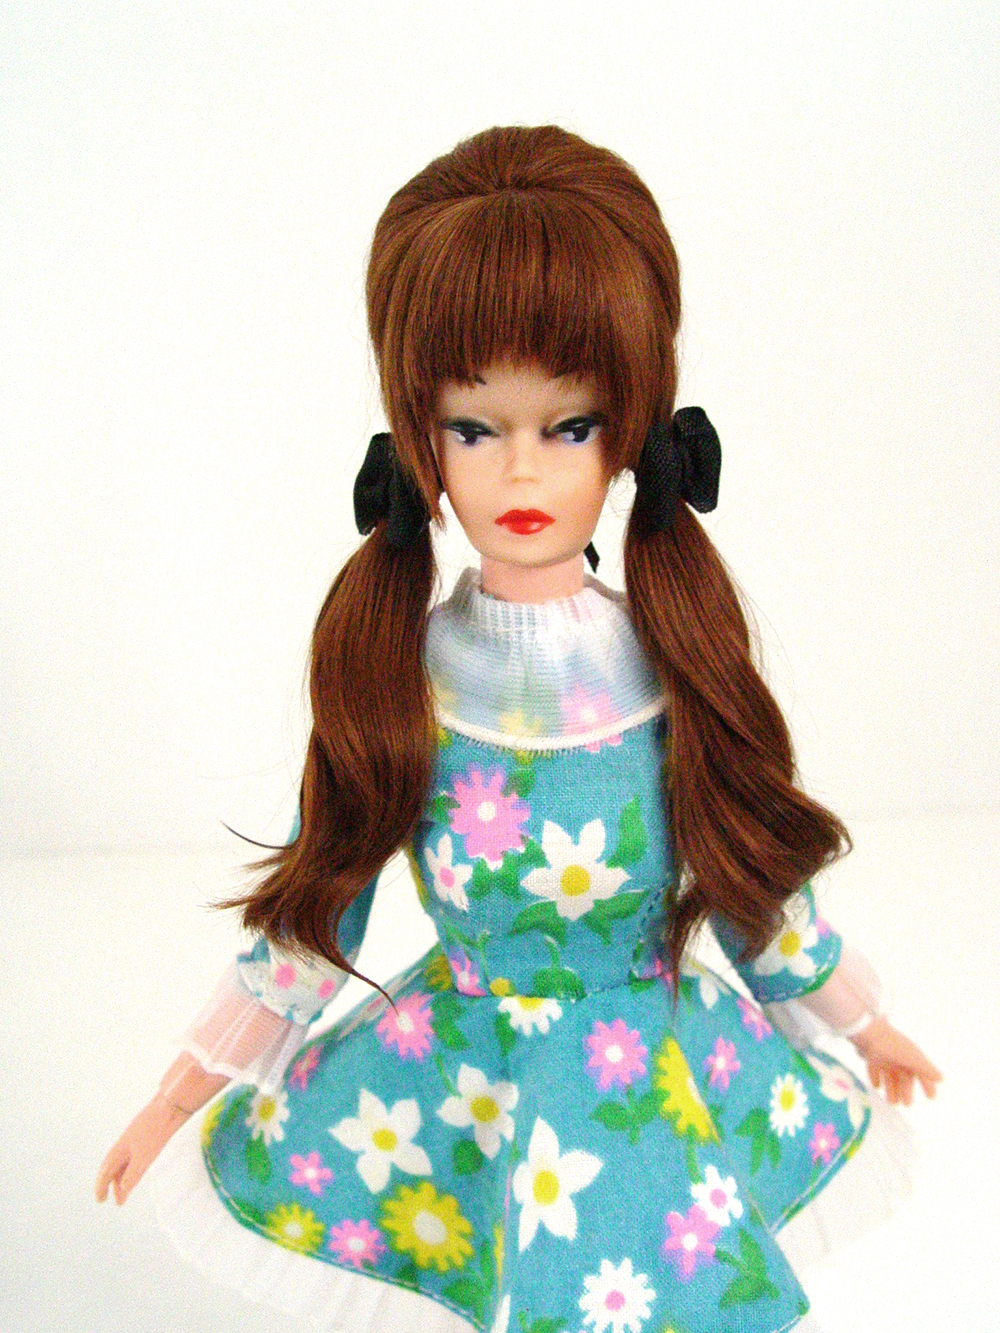 debbie drake barbie clone fashion royalty popovy pasha maskcat bjd wig alpaca mohair yatabazah marmite sue enchanted doll tender creation